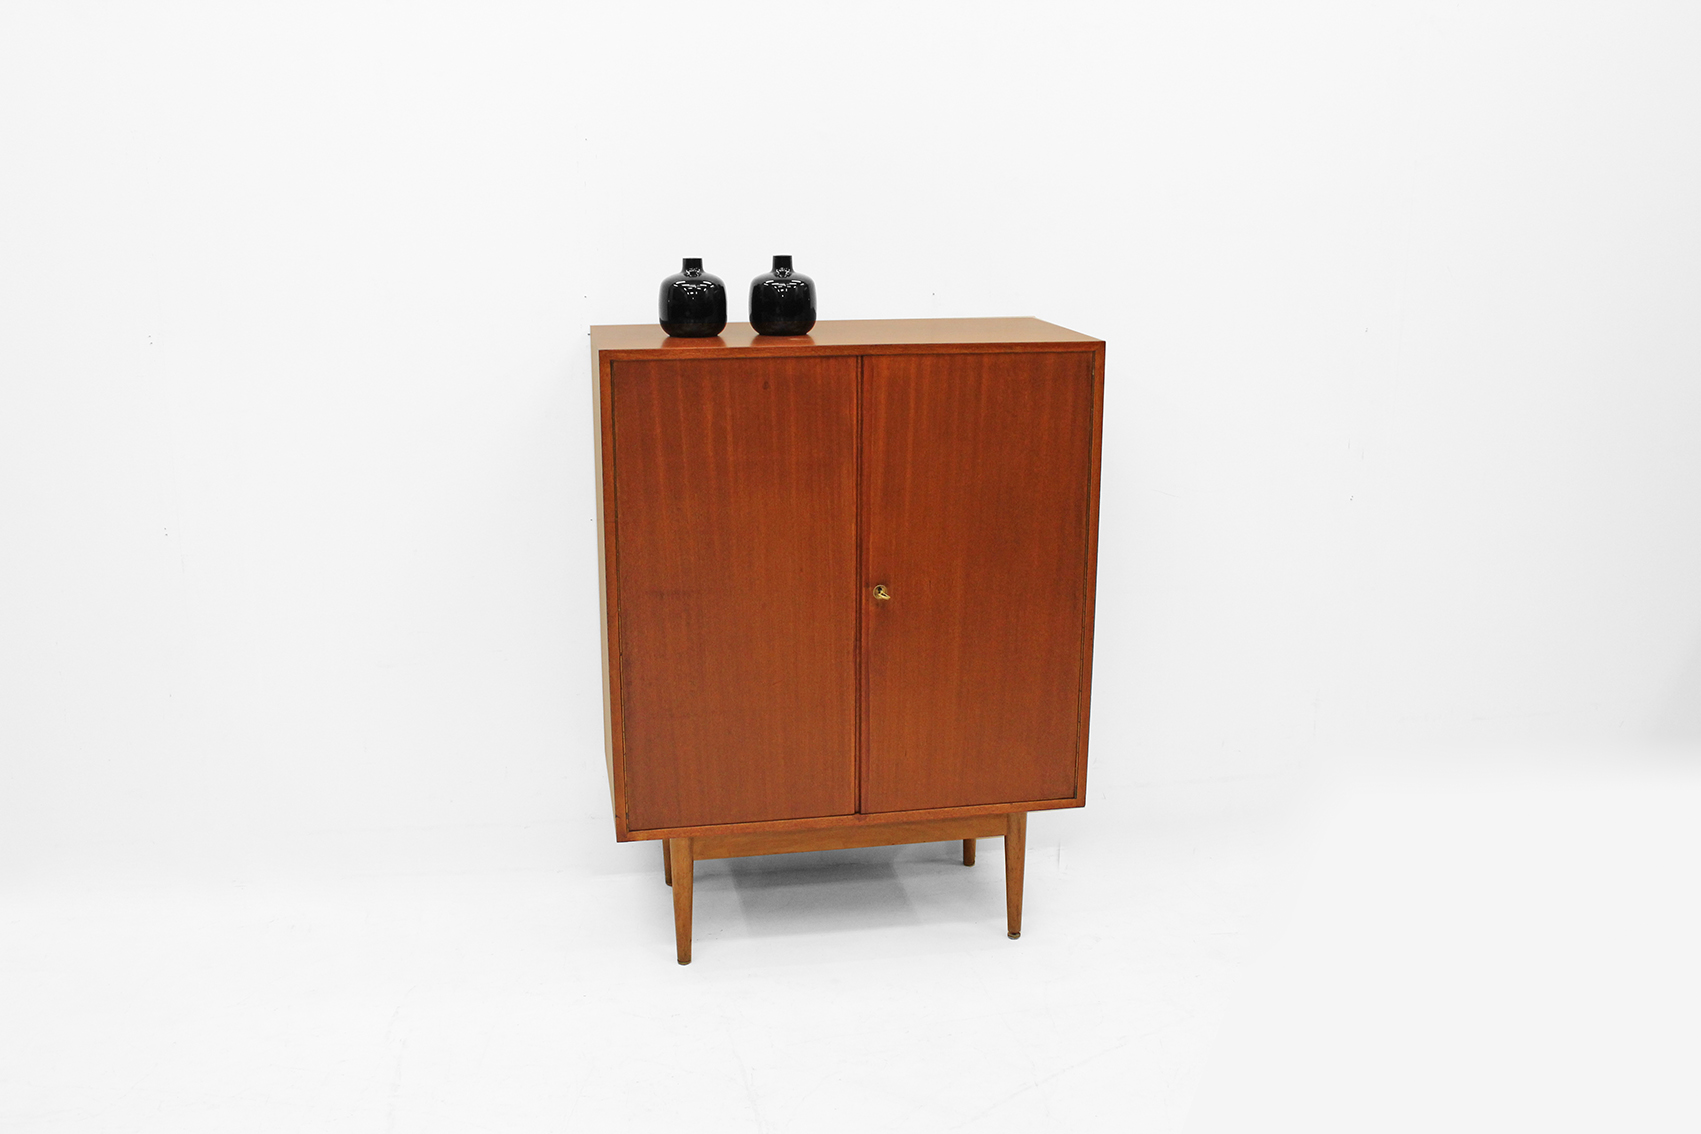 Small cabinet by van den Berghe Pauvers